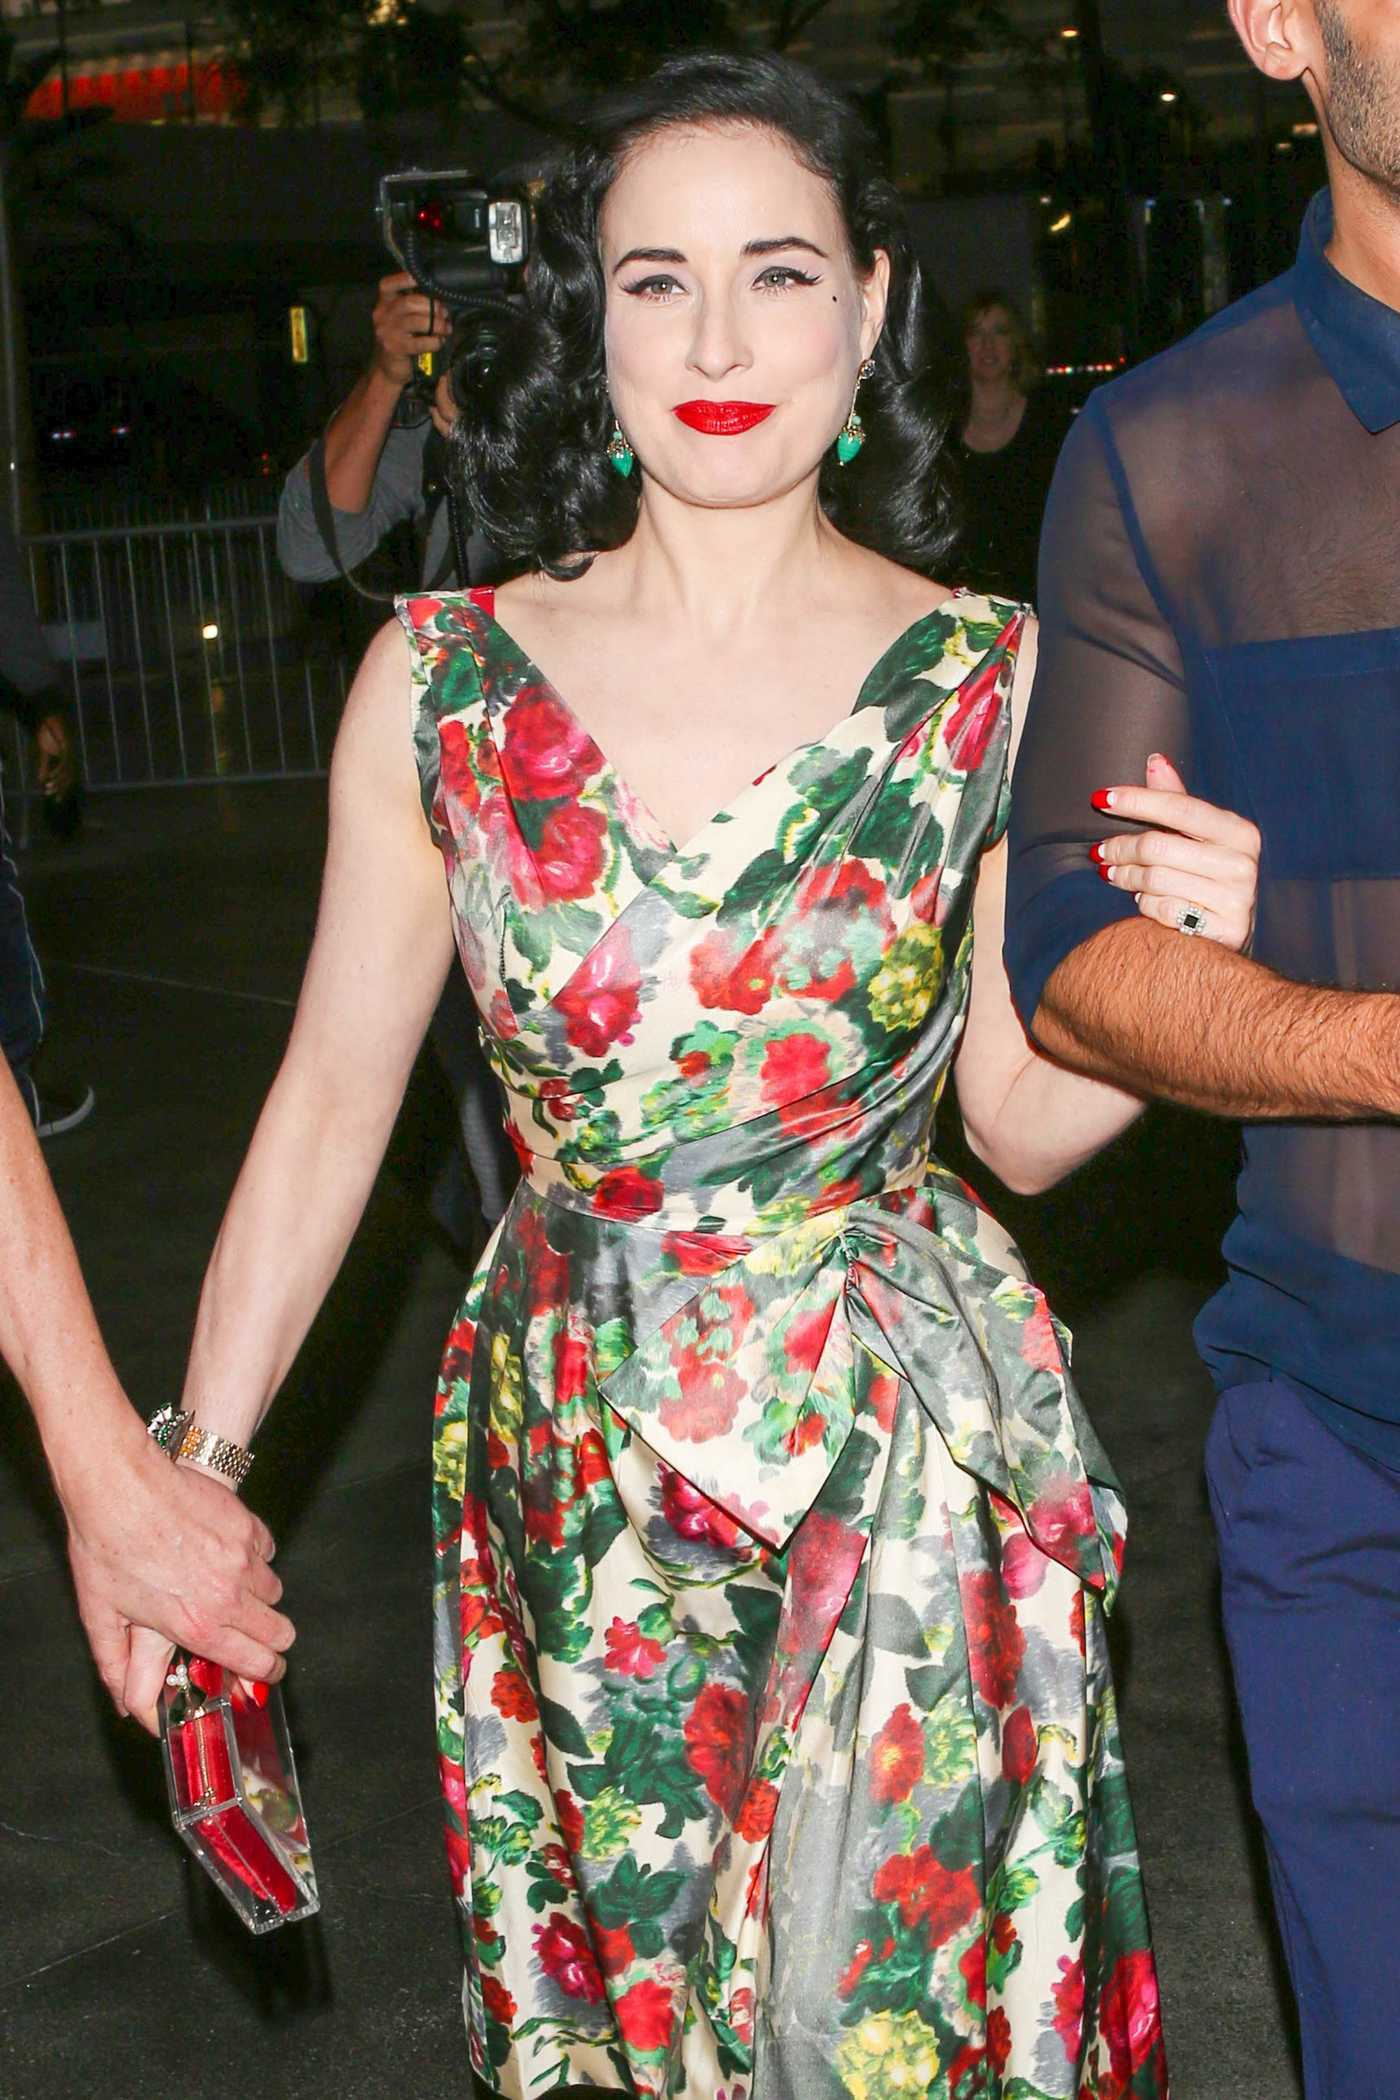 Dita Von Teese Arrives at the Adele Concert in Los Angeles 08/10/2016